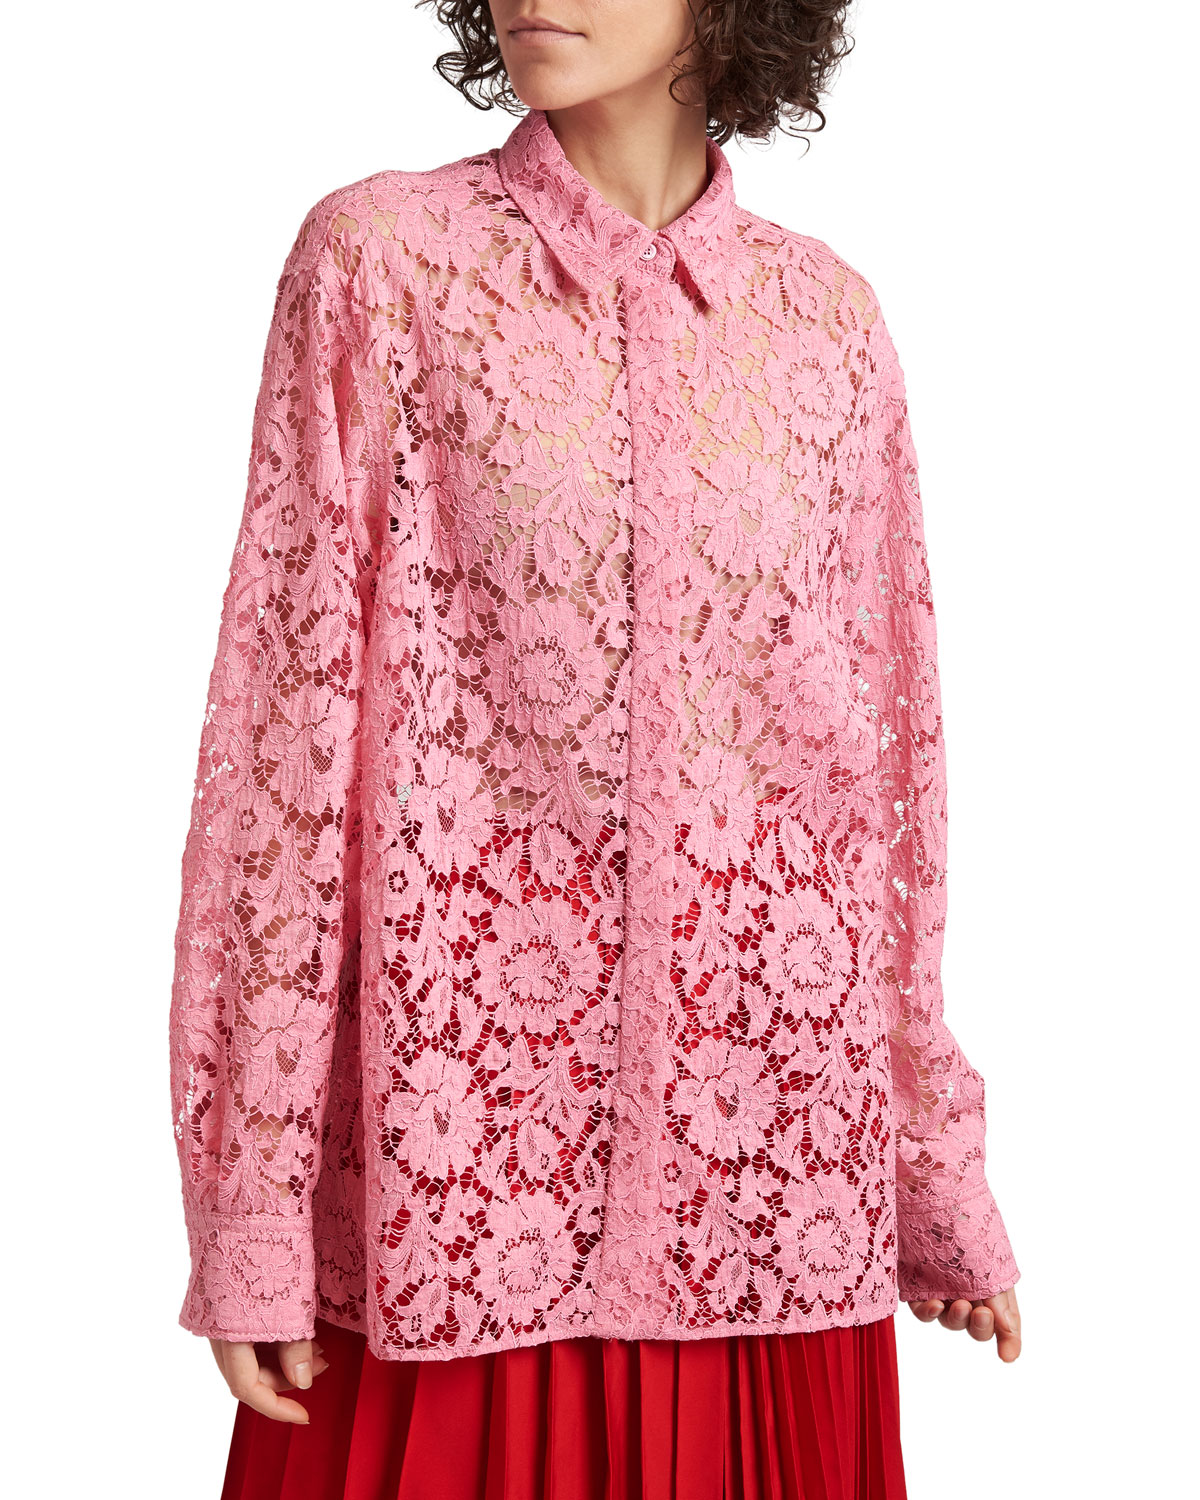 Sheer Floral-Lace Collared Blouse